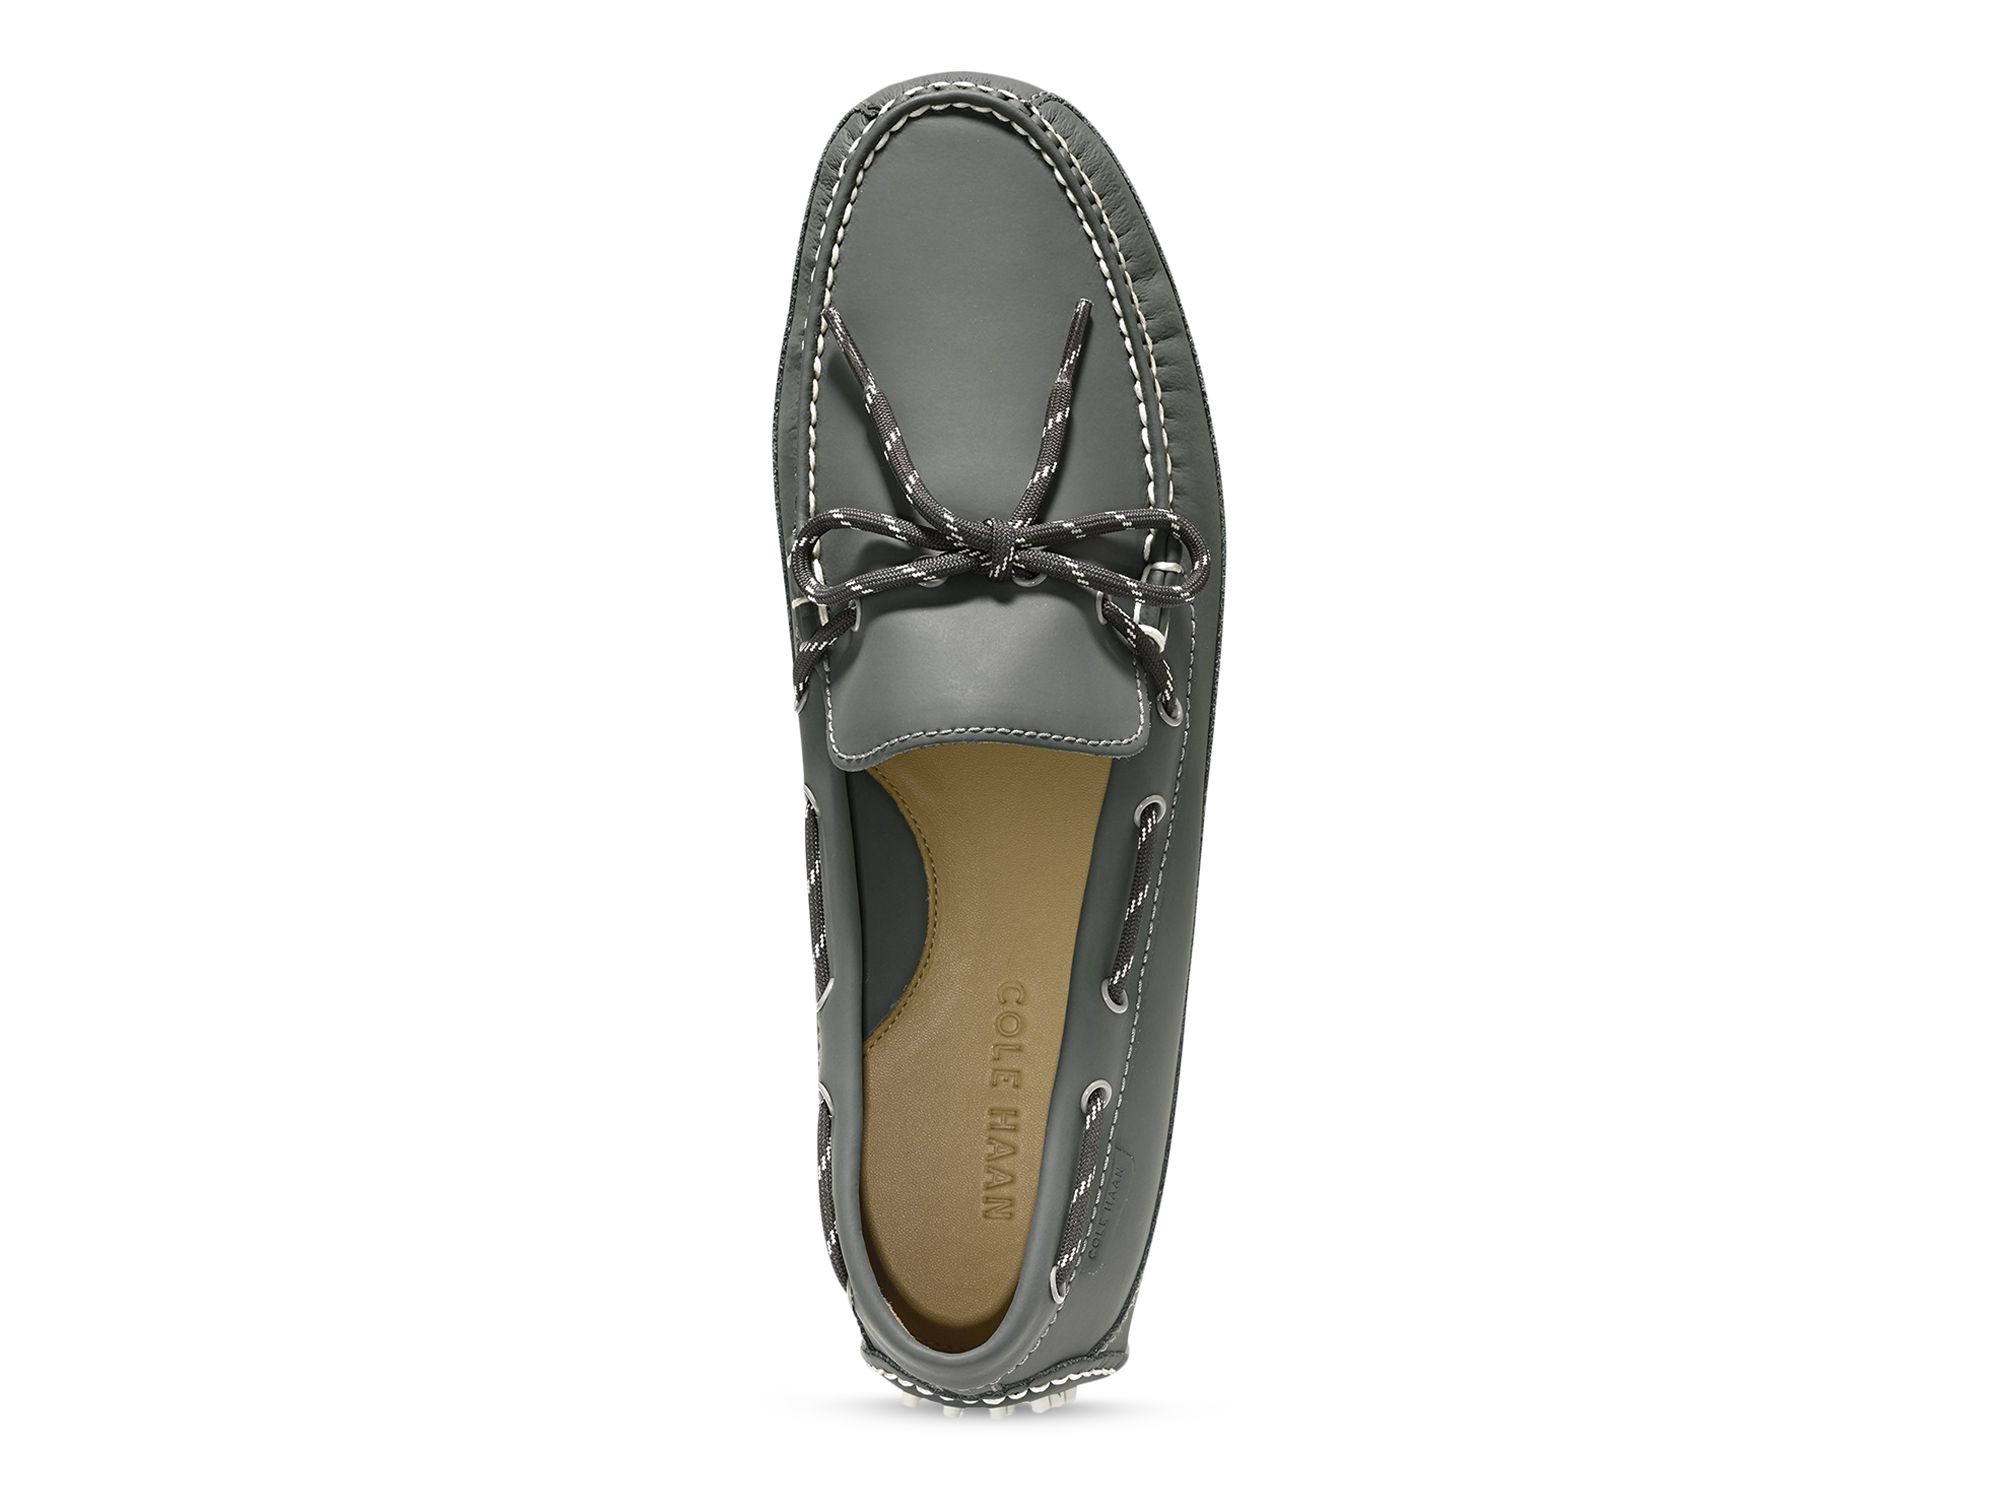 05b18480a46 Lyst - Cole Haan Grant Canoe Camp Moc Driving Loafers ...